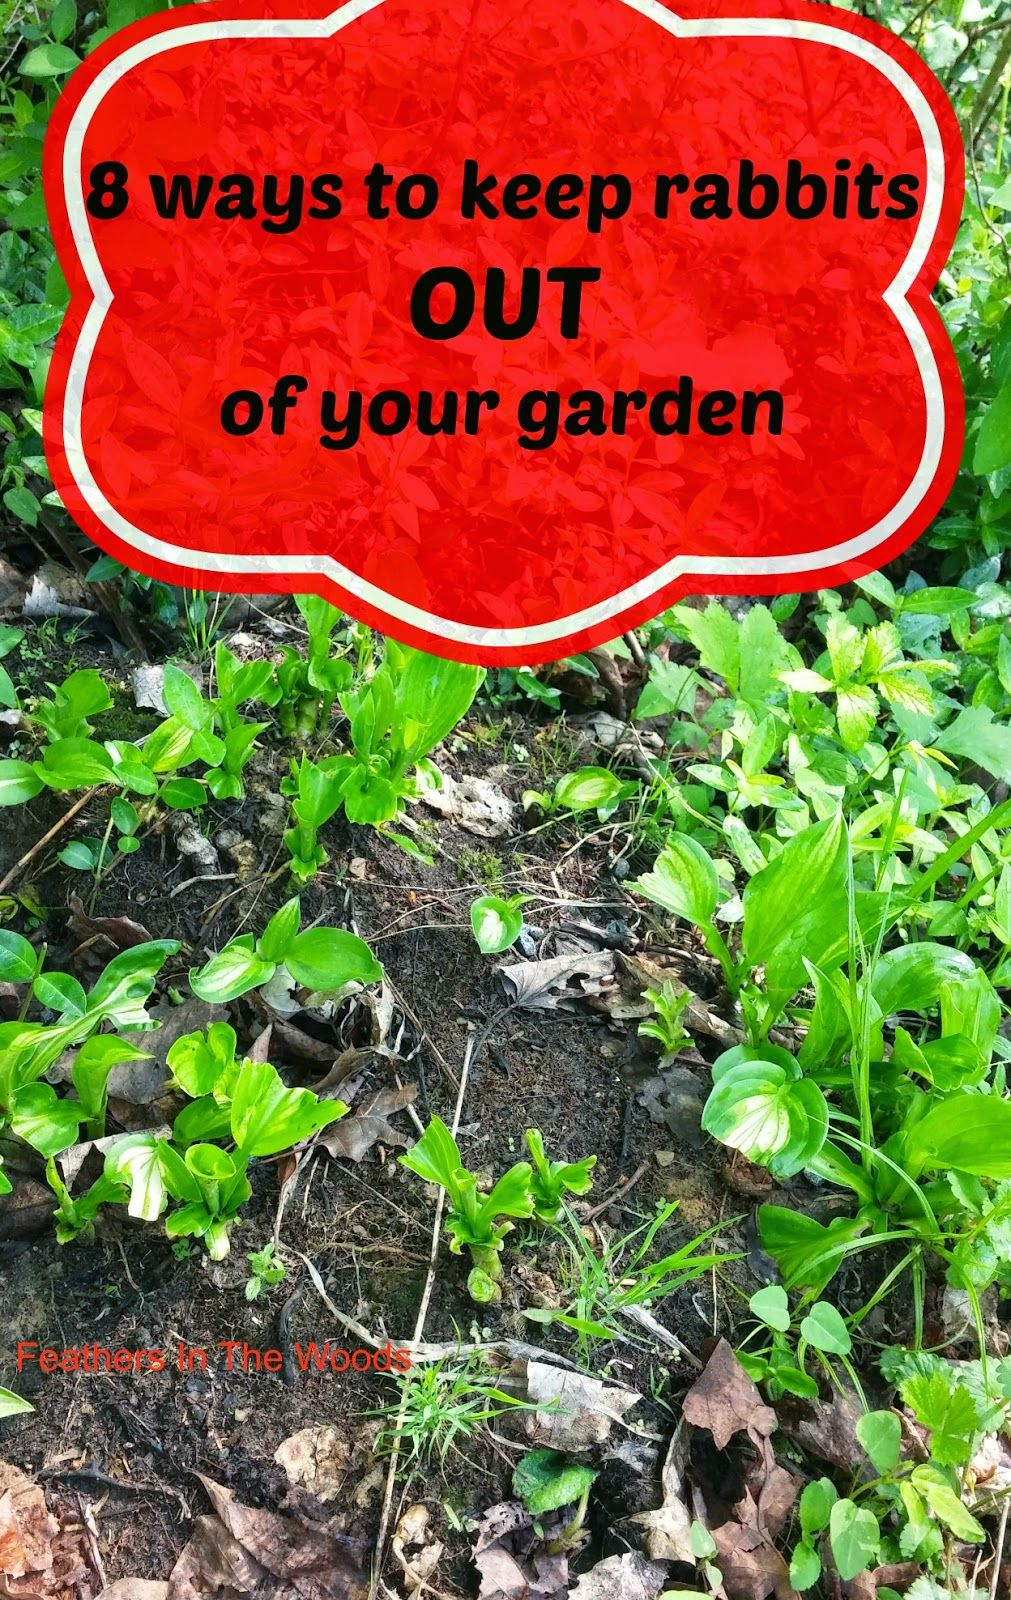 8 tips to keep rabbits out of your garden gardening tips - How to keep rabbits out of a garden ...